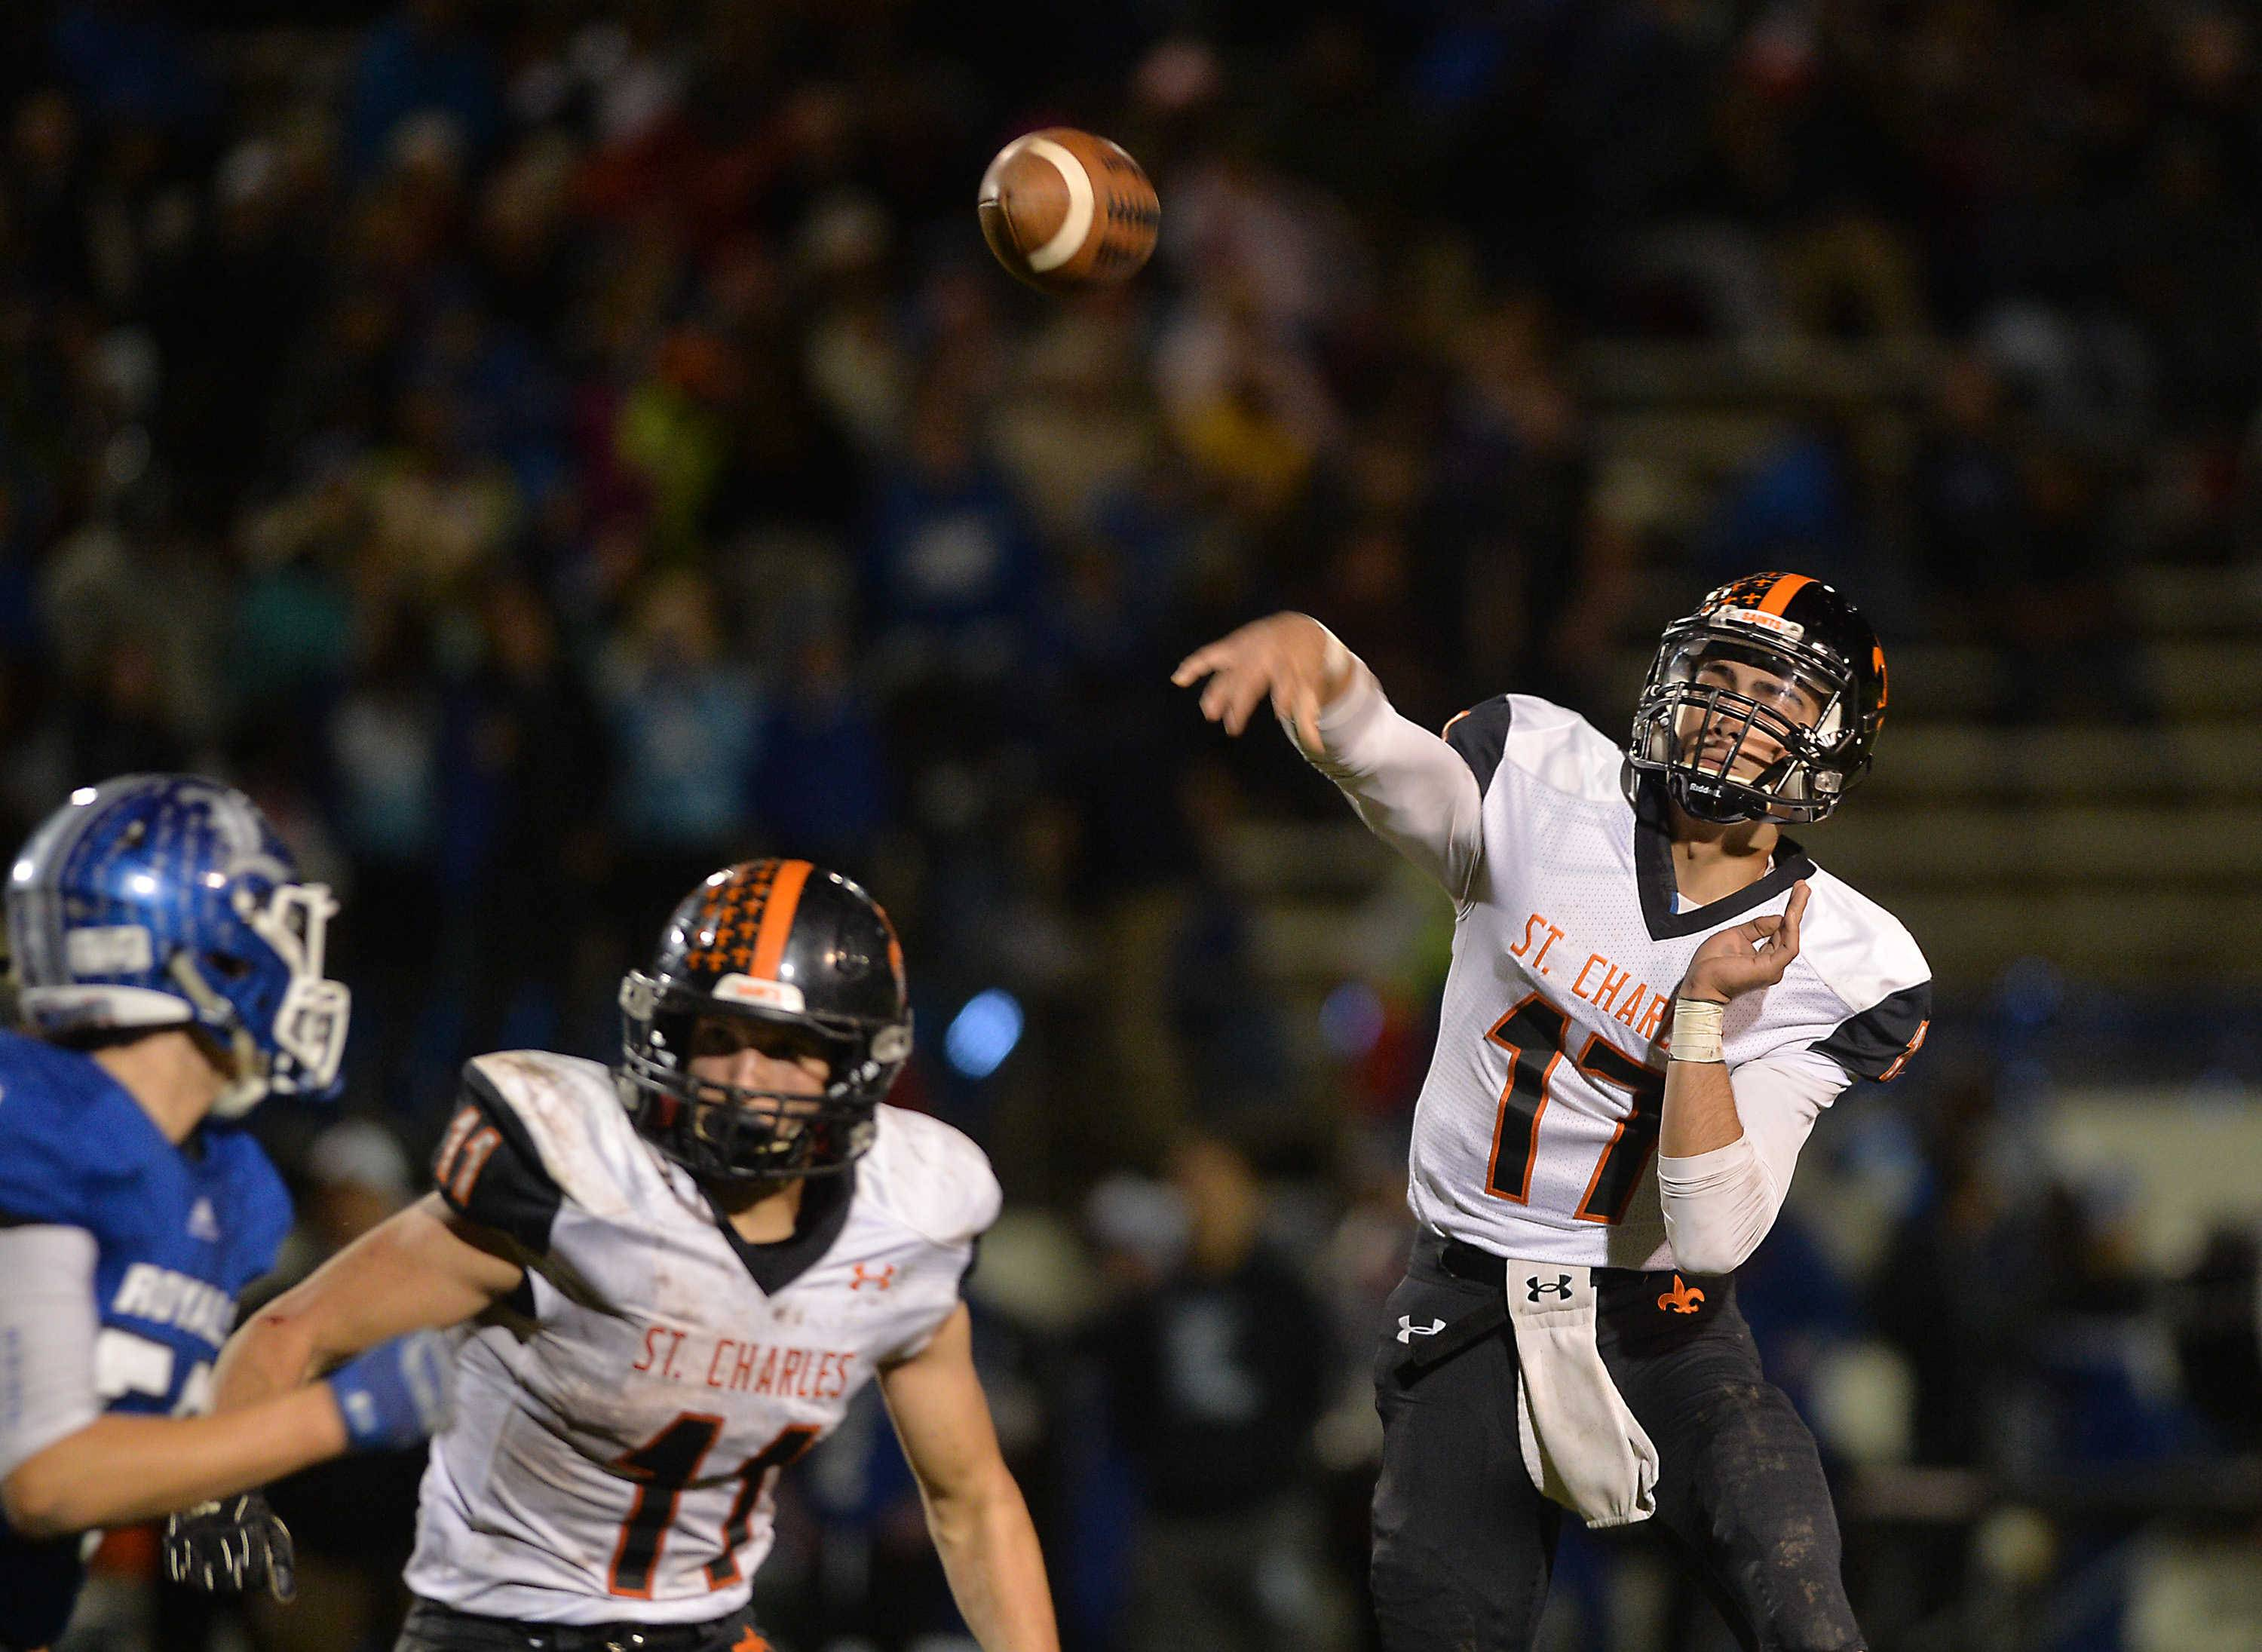 St. Charles East quarterback Zachary Mitchell passes in the second quarter of their Upstate Eight contest Friday night at Memorial Field in Elgin.